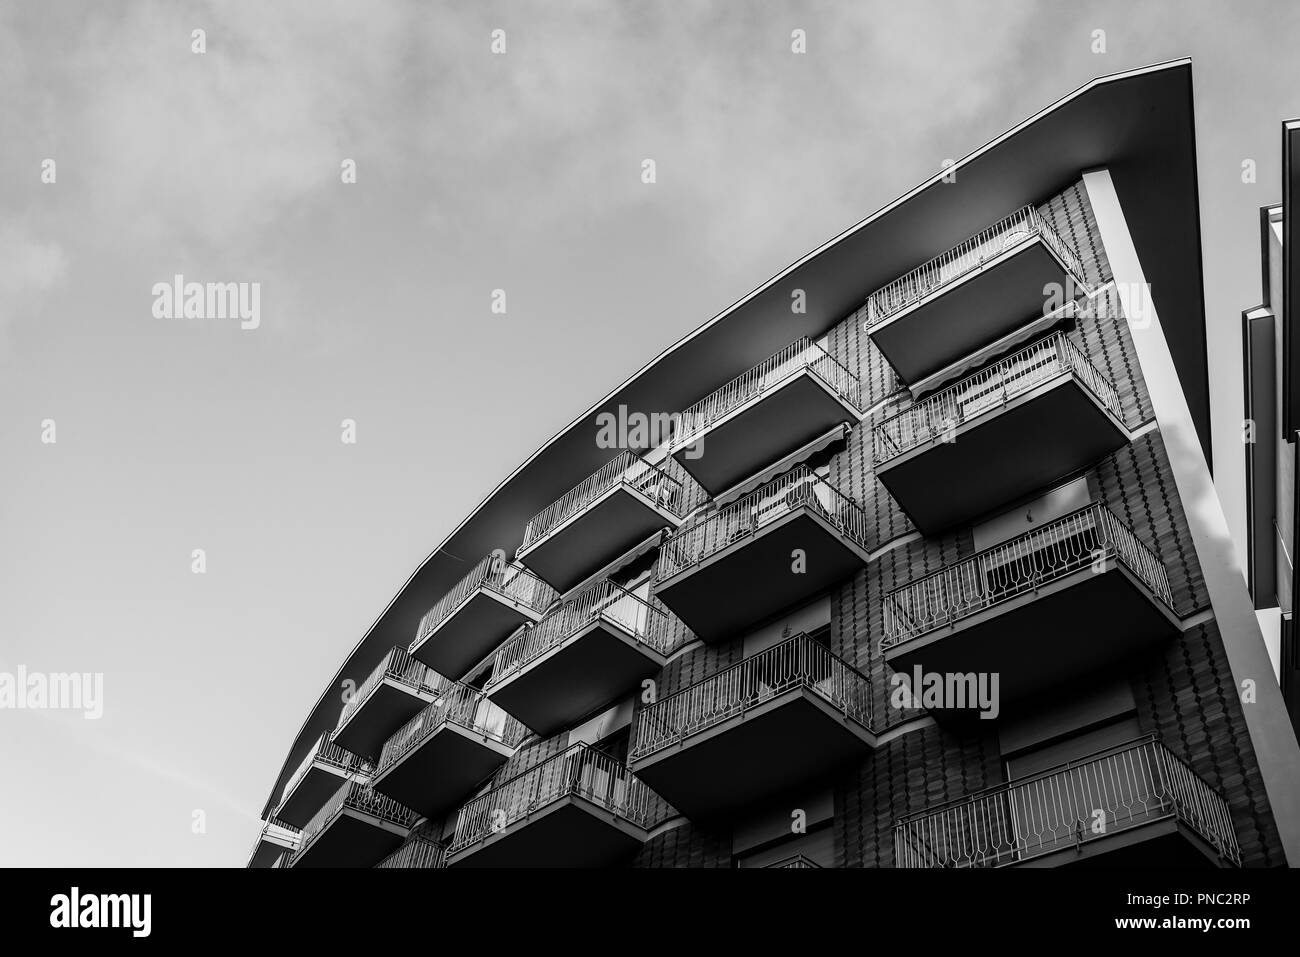 Building with balconies, Sorrento, Italy - Stock Image